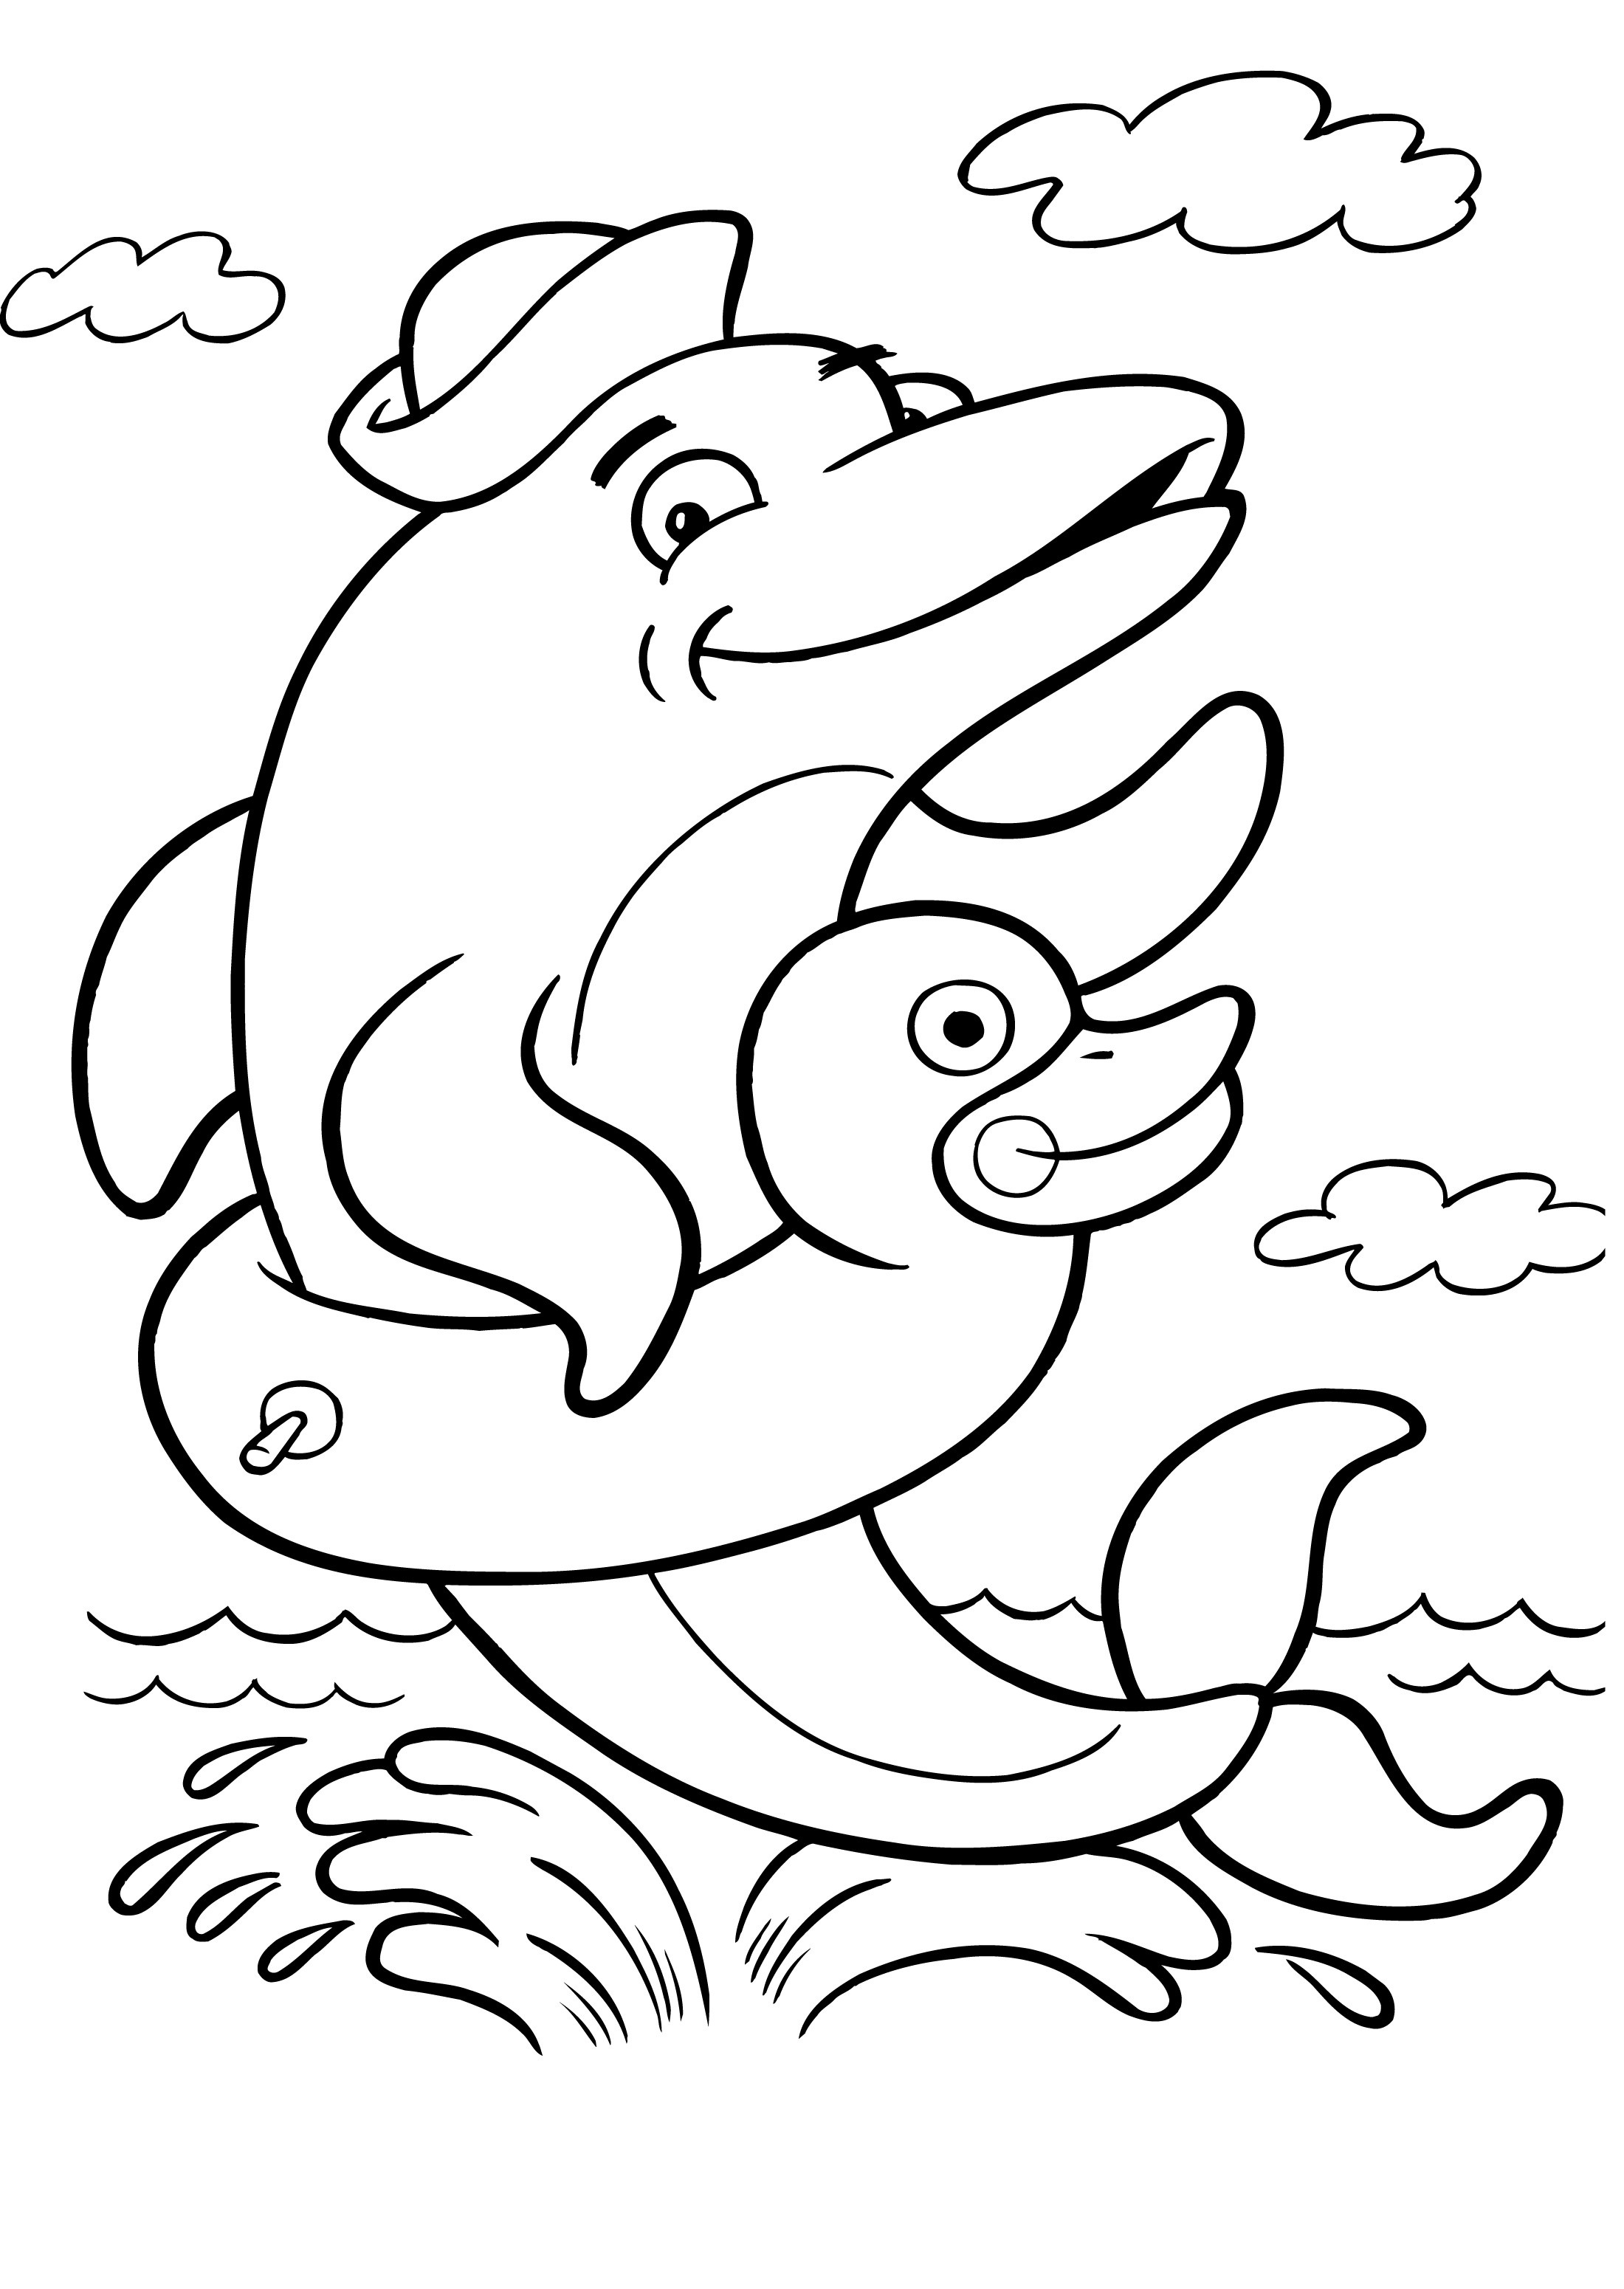 https://www.animalplace.net/wp-content/uploads/2013/05/Free-Dolphin-Coloring-Pages-for-Kids.jpg Dolphins